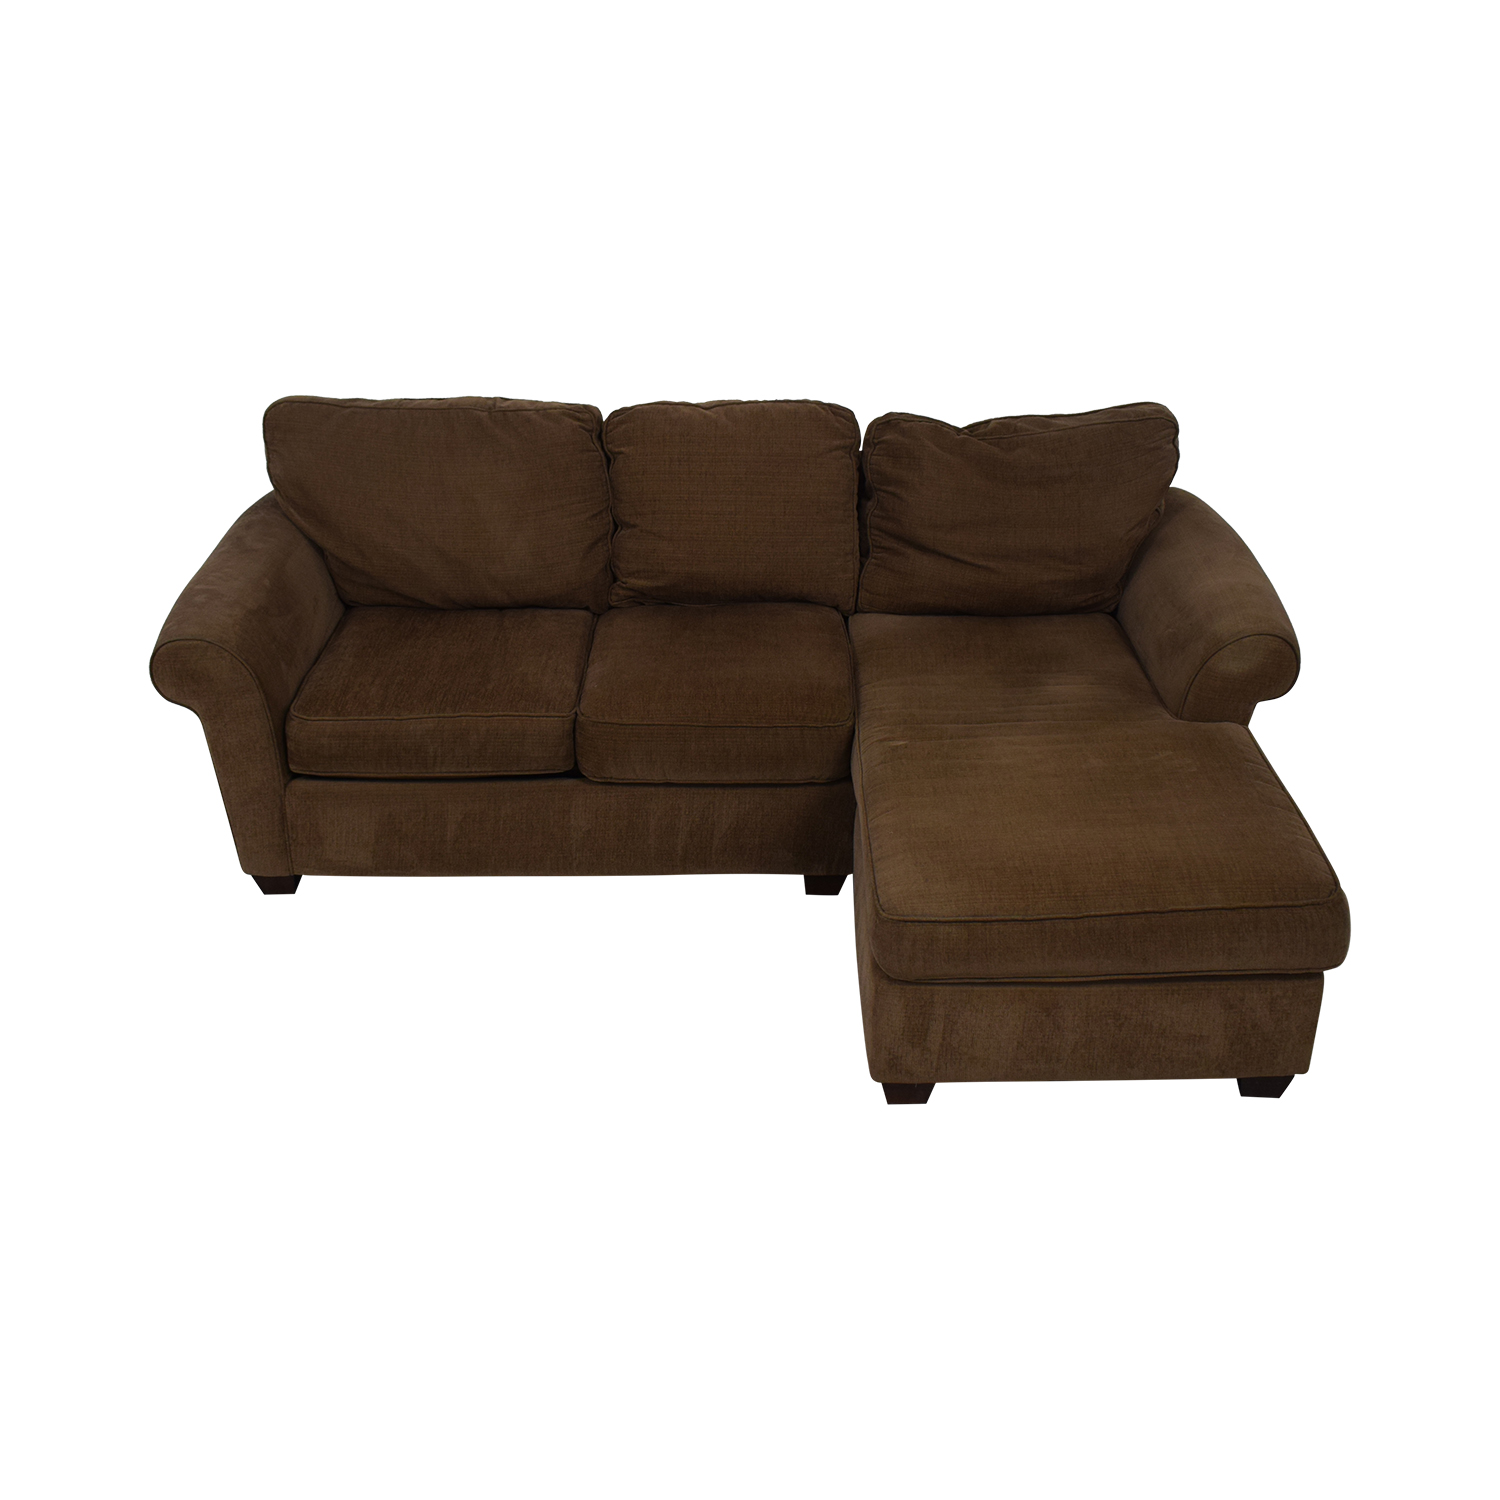 83 Off Bauhaus Furniture Brown Sofa With Chaise Sofas